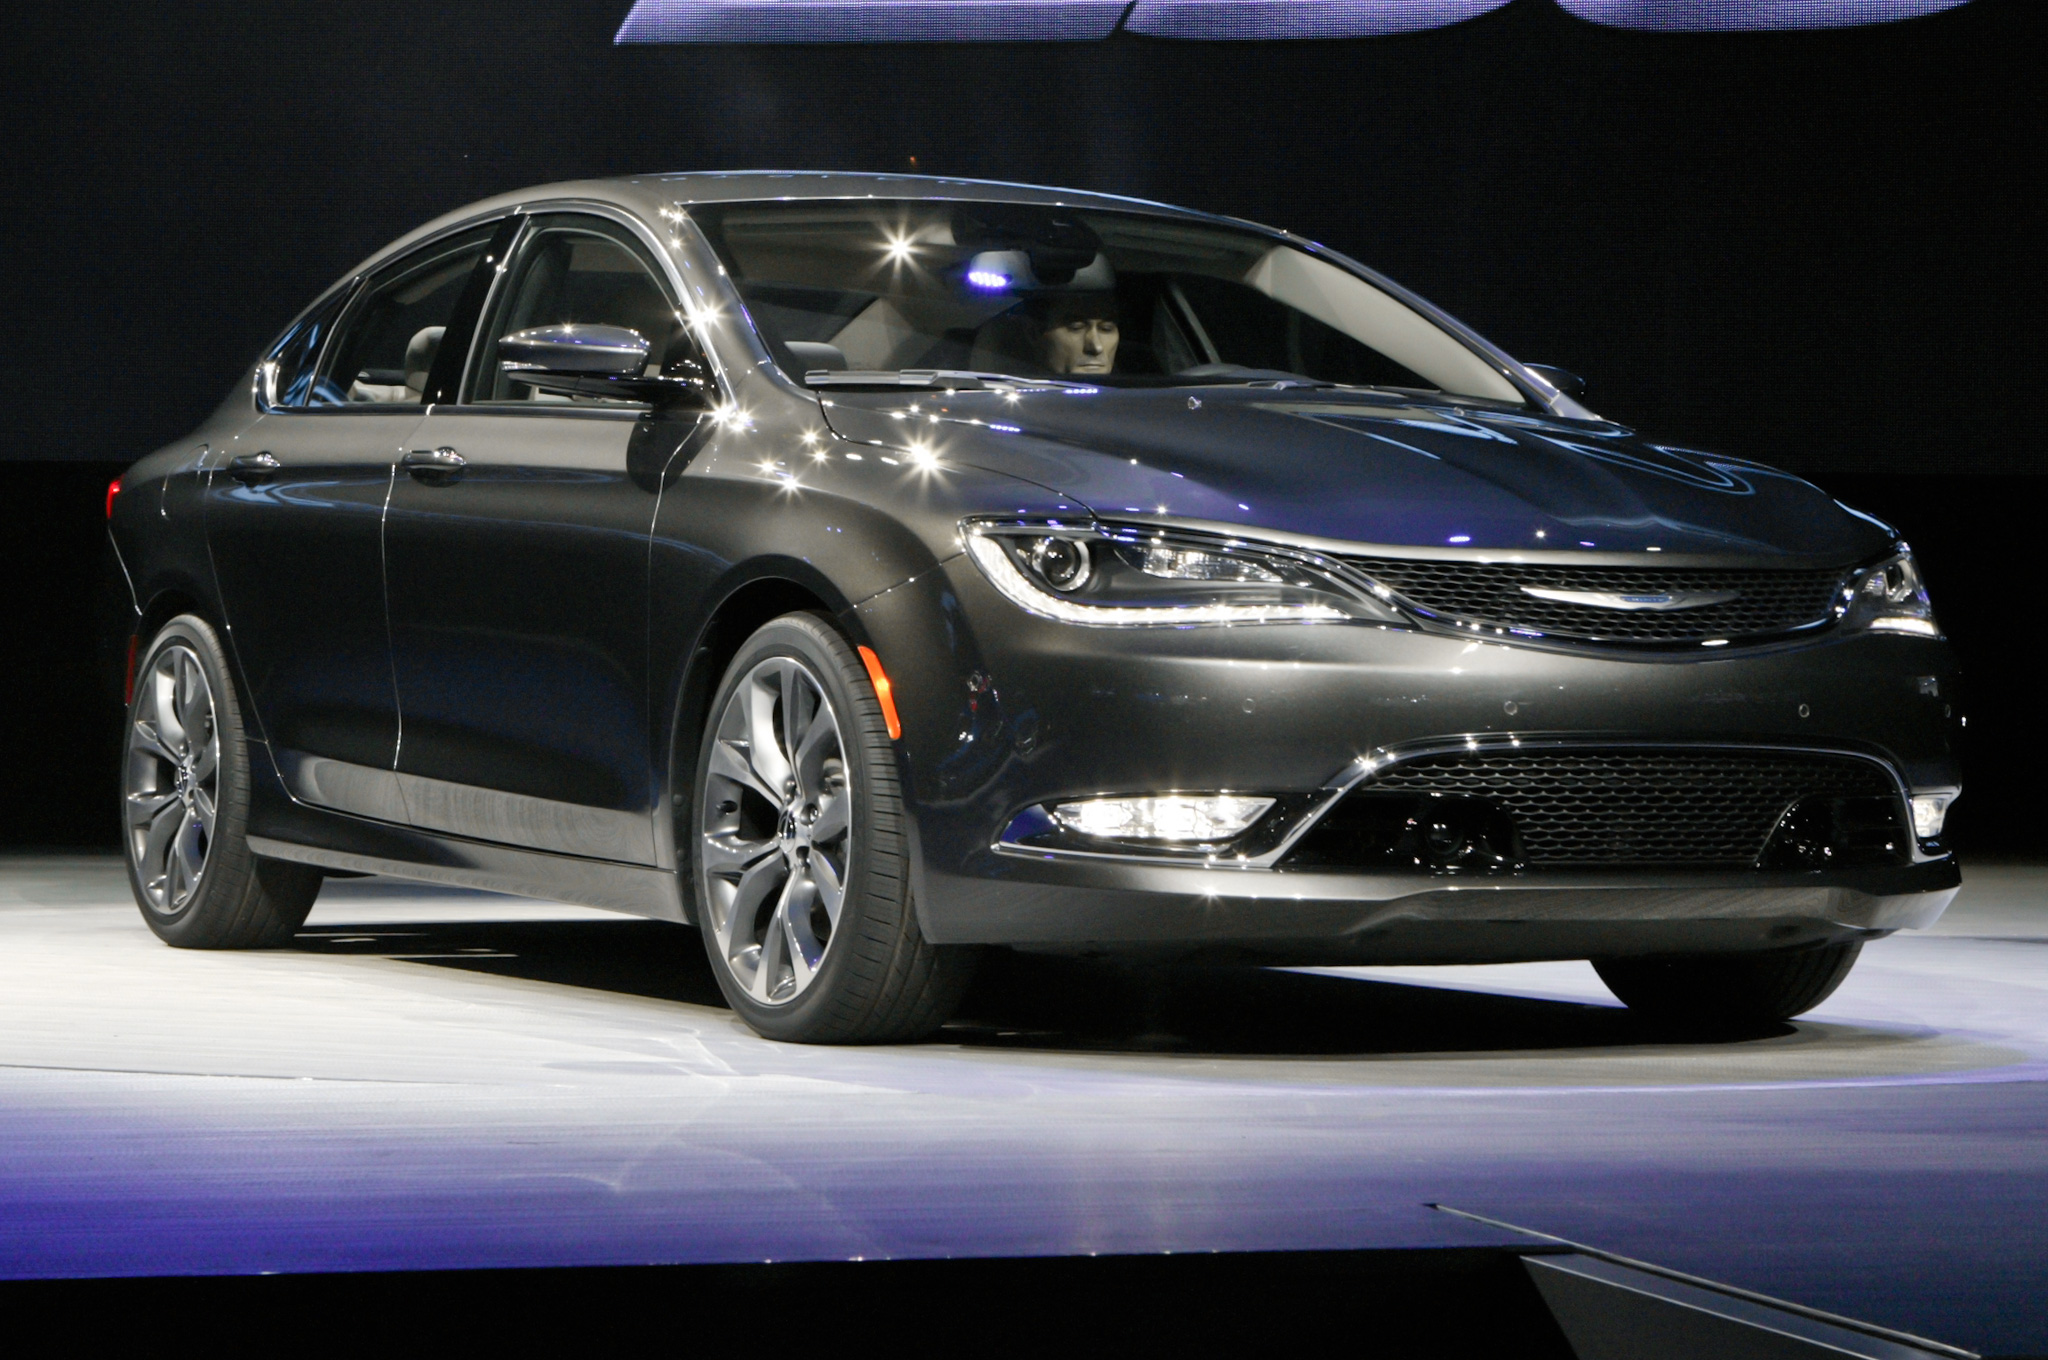 2015 Chrysler 200 Auto Show (View 4 of 11)